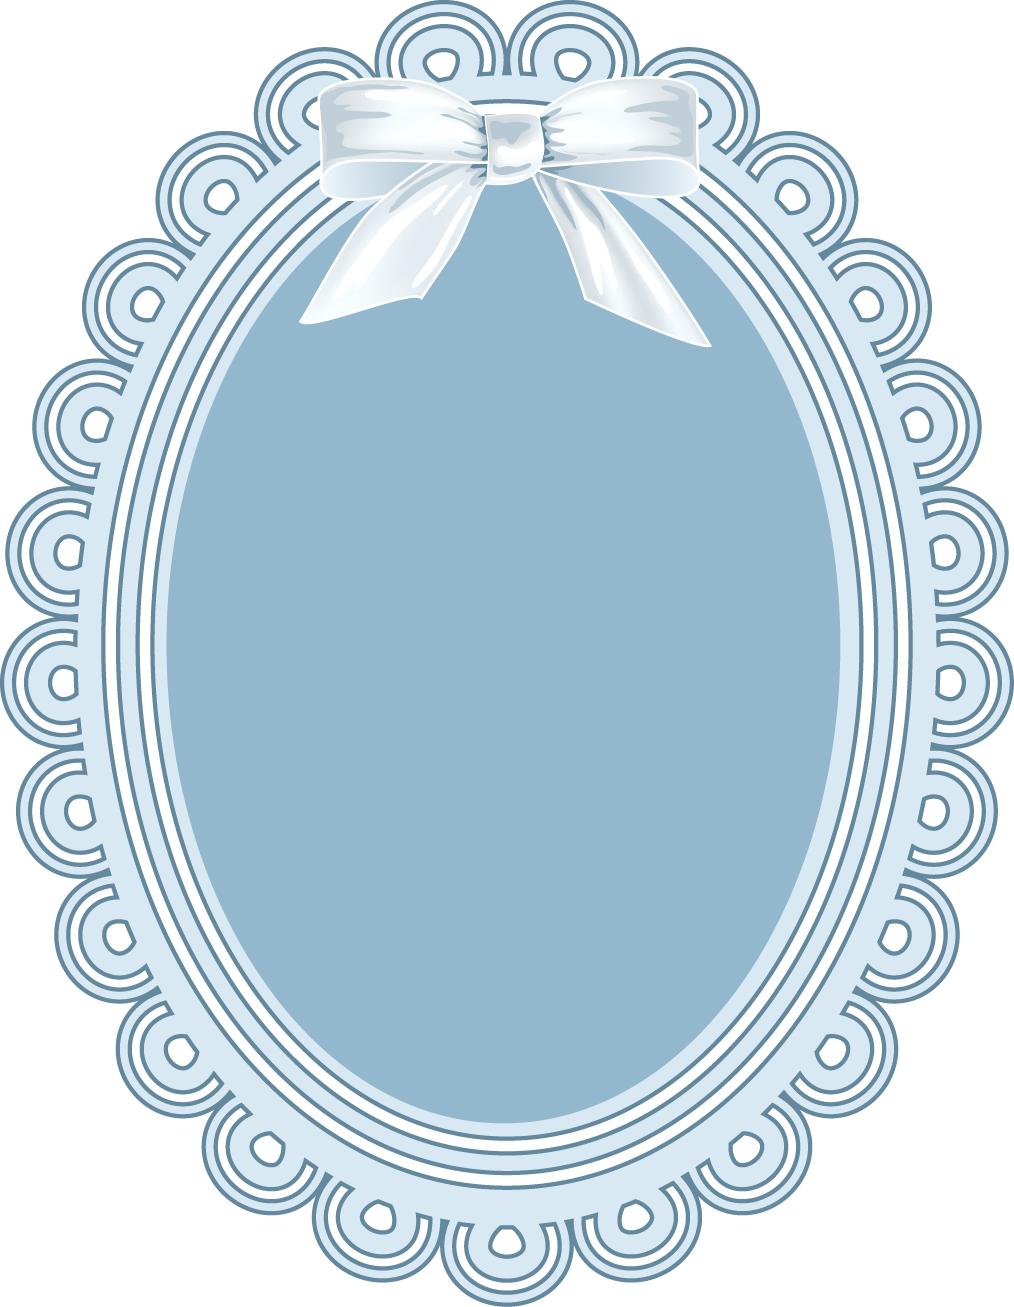 Download computer file blue. Oval clipart lace